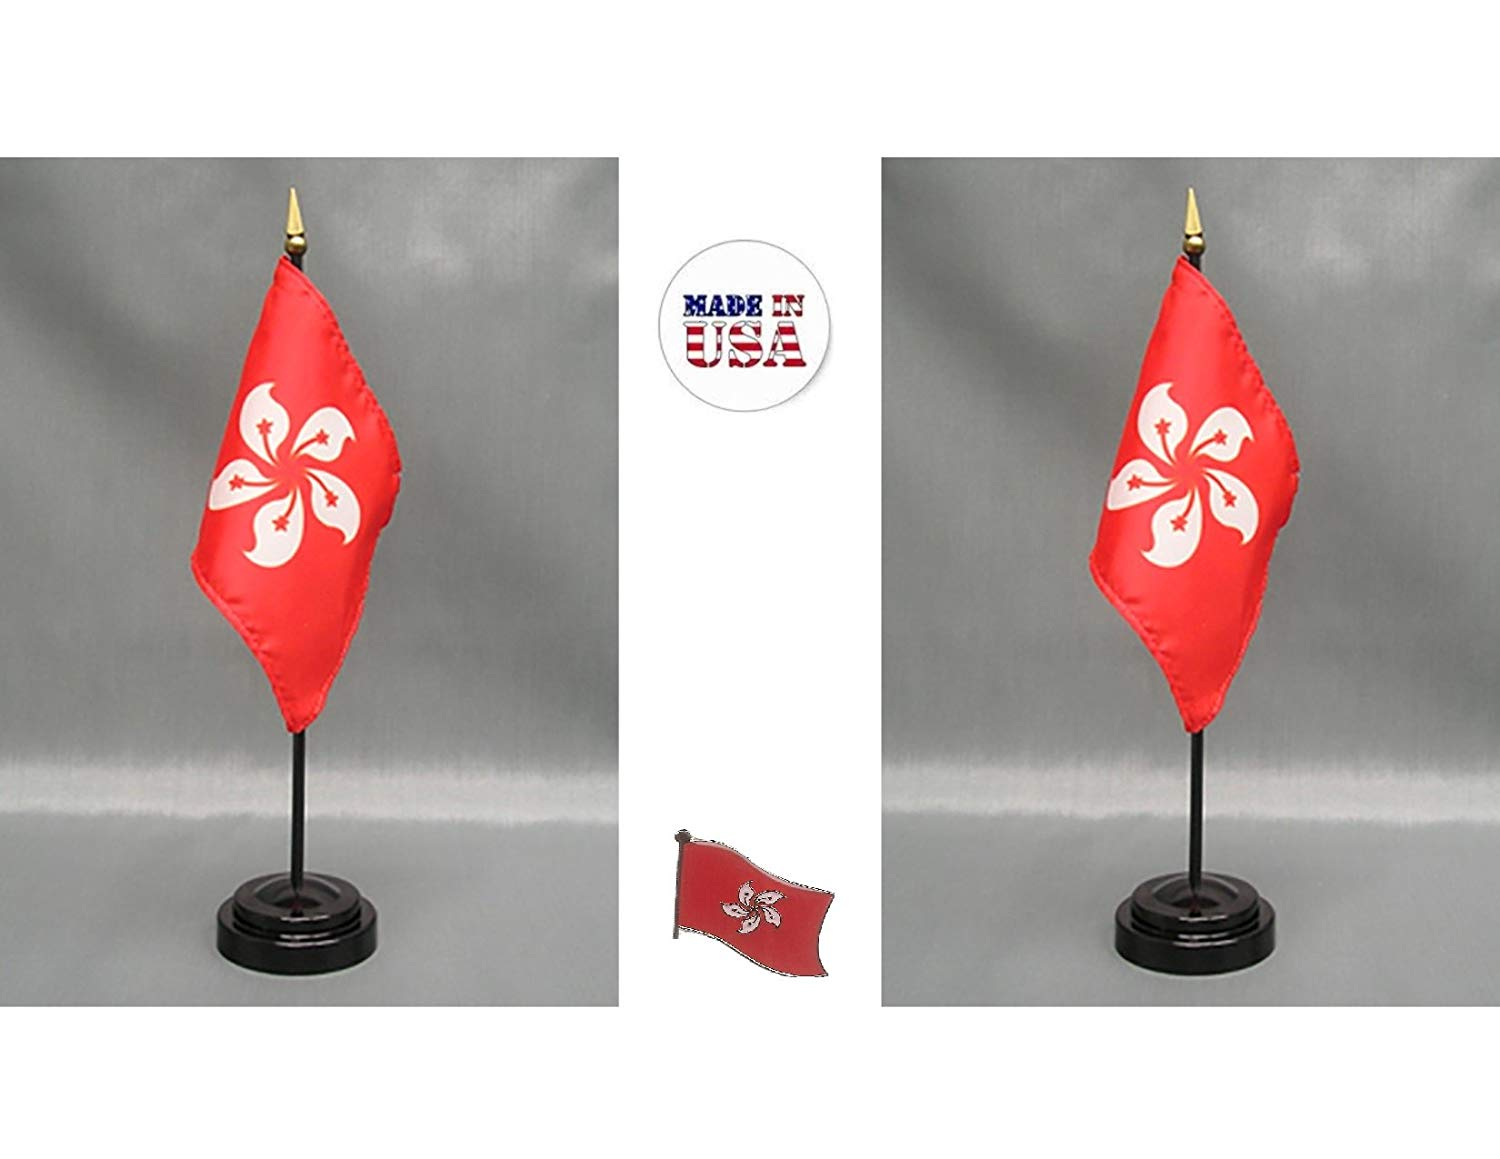 "Made in The USA. 2 Hong Kong Rayon 4""x6"" Miniature Office Desk & Little Hand Waving Table Flags Includes 2 Flag Stands & 2 Small Mini Hong Kong Stick Flags, Also Includes Hong Kong Flag Lapel Pin."